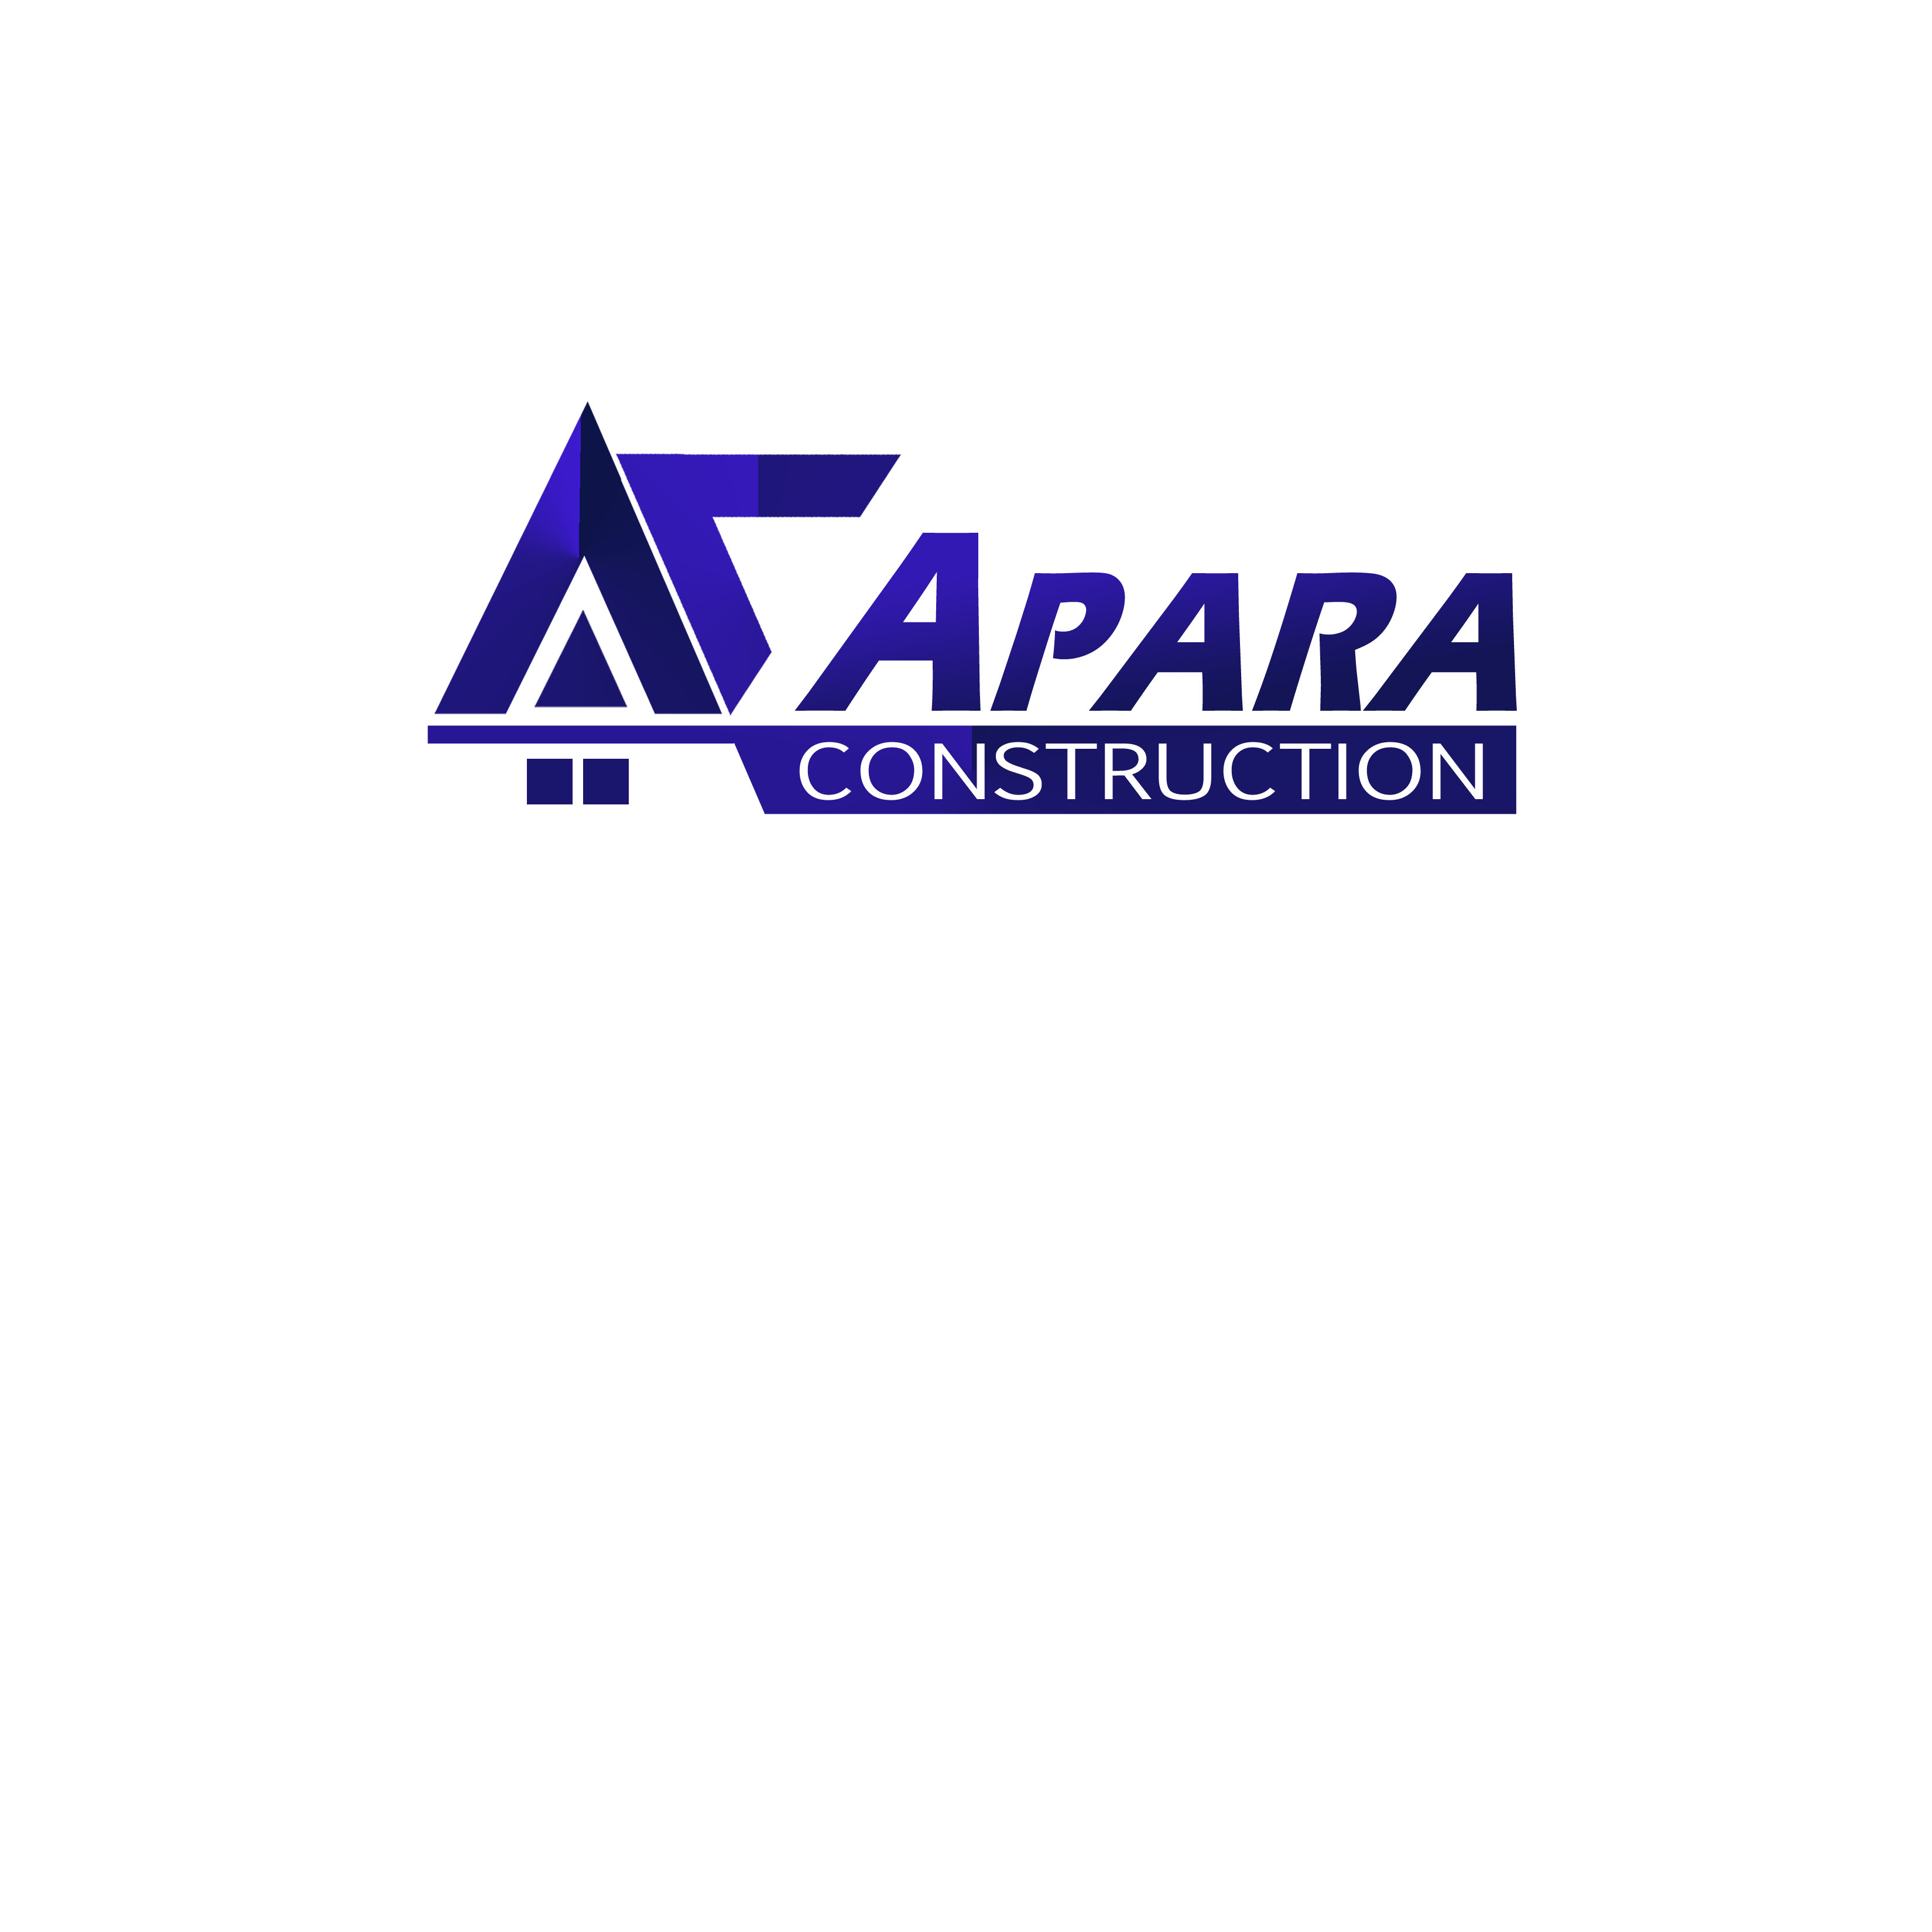 Logo Design by Alan Esclamado - Entry No. 38 in the Logo Design Contest Apara Construction Logo Design.